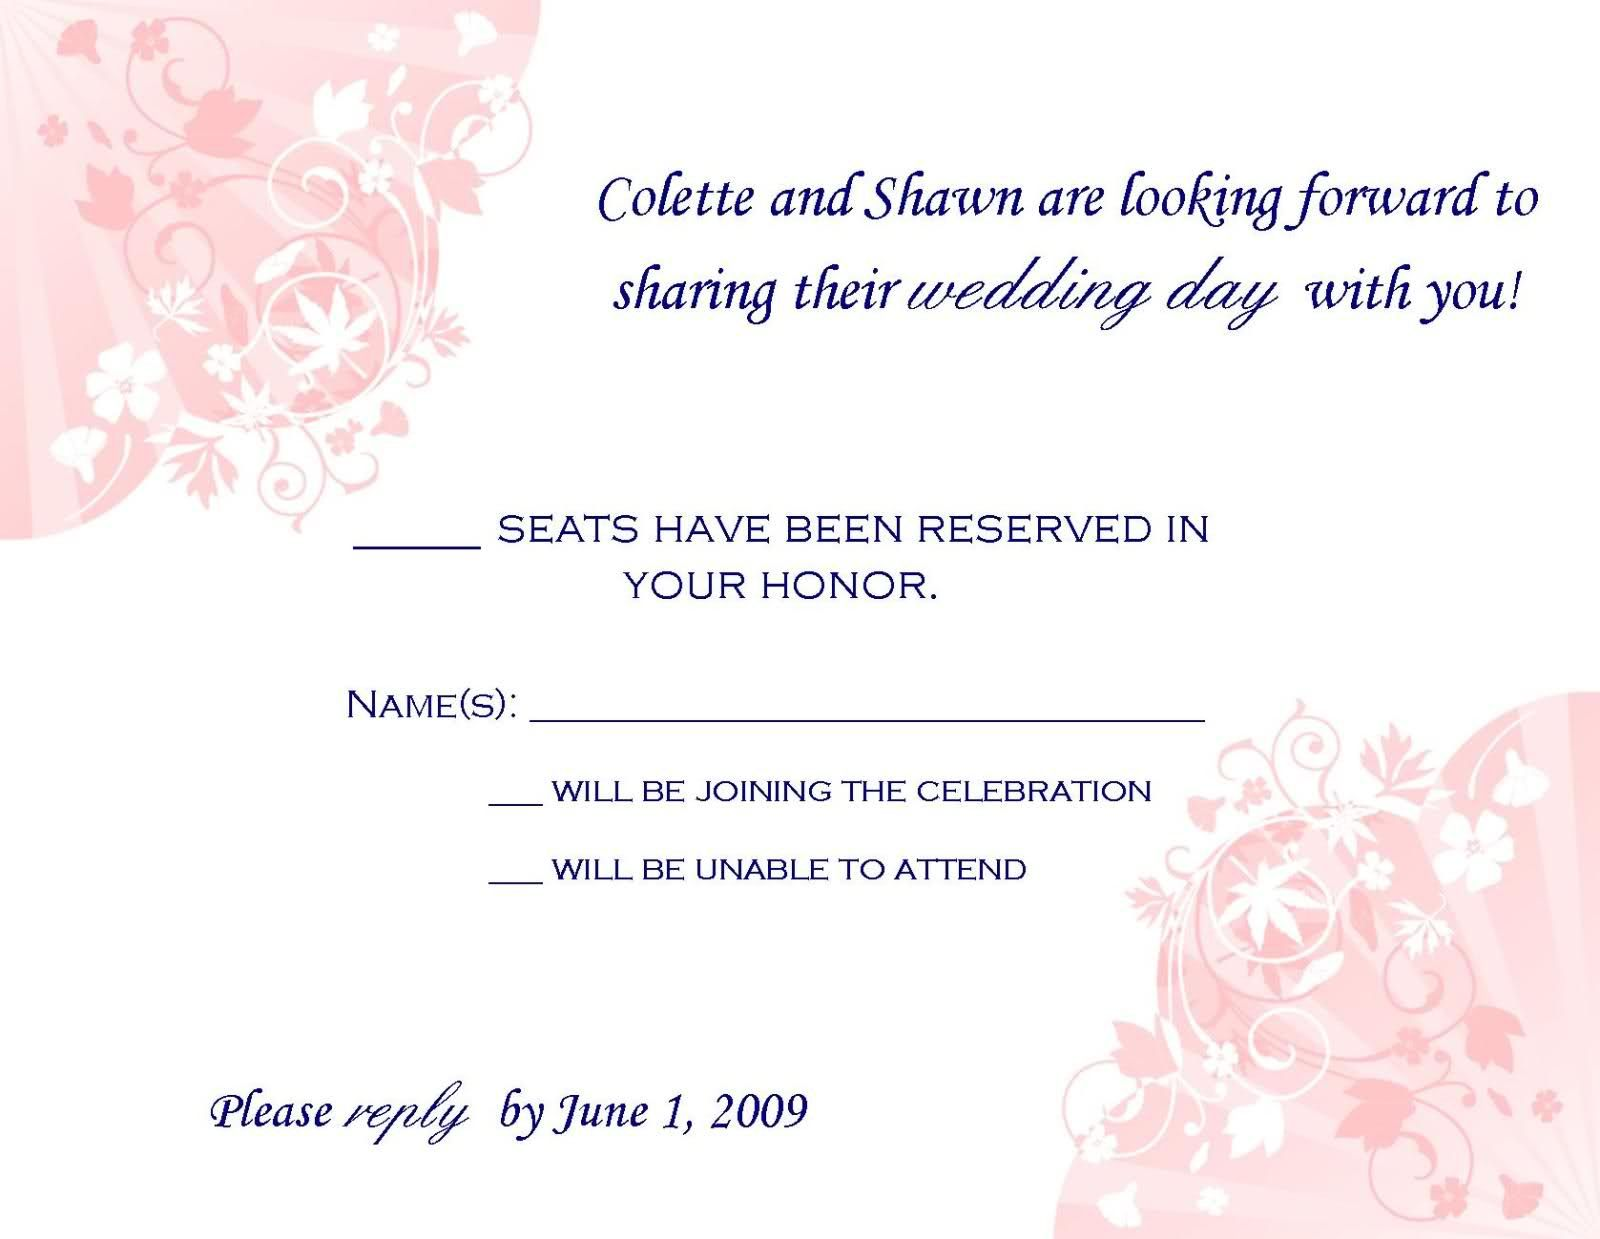 Rsvp wording rsvp cards wording wedding ideas pinterest rsvp wording rsvp cards wording stopboris Choice Image